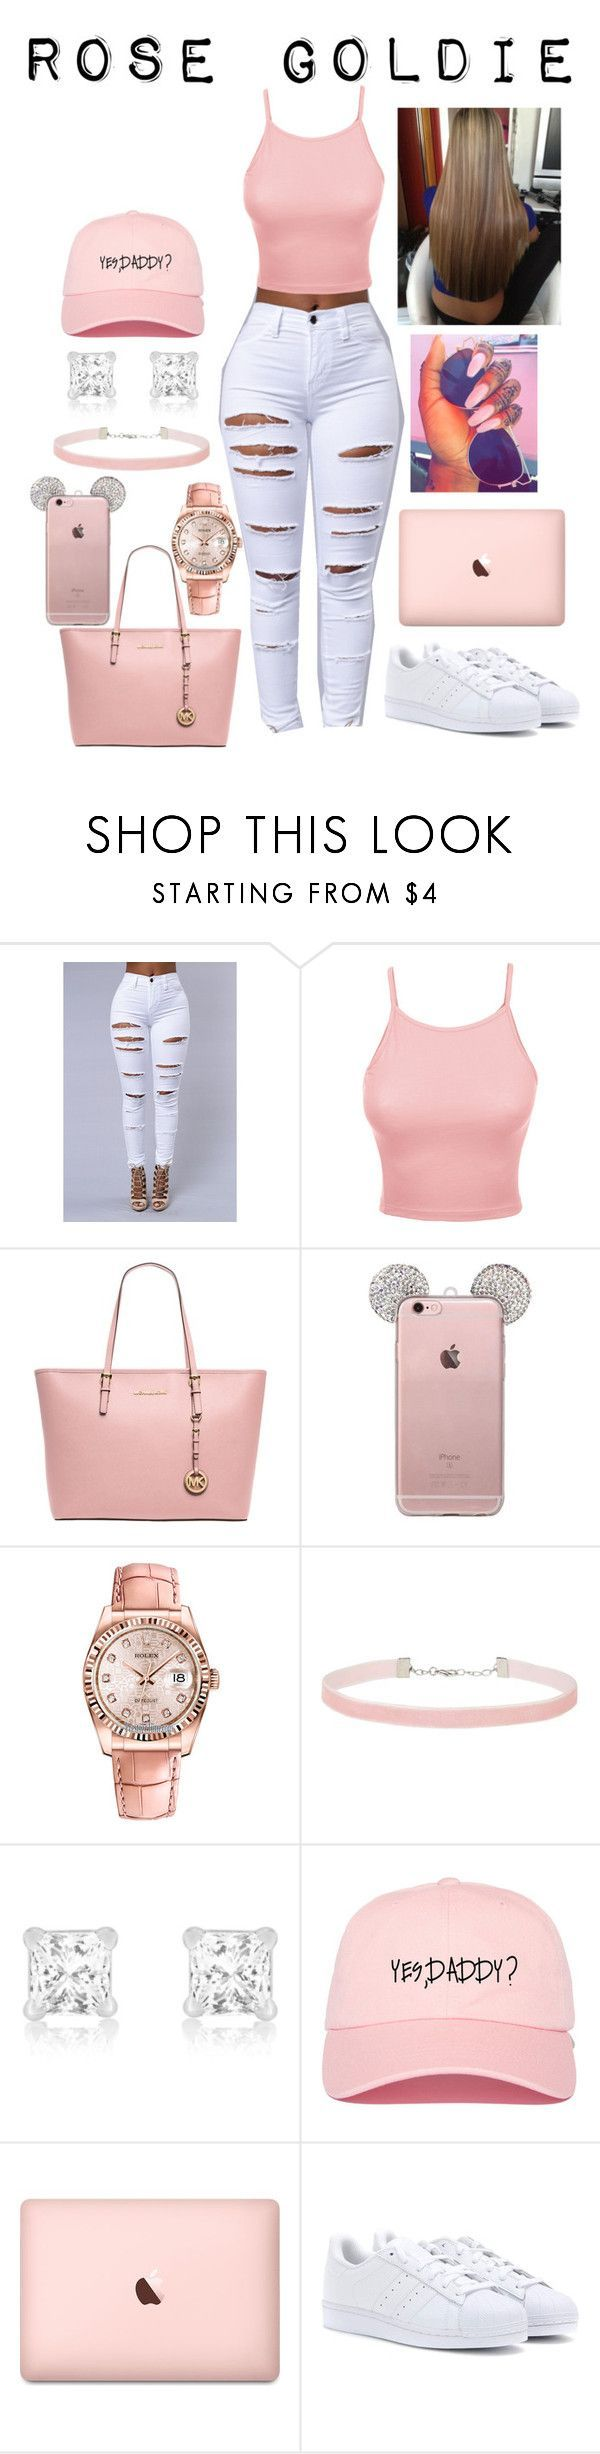 """Untitled #65"" by curlss-wavyy-sexy on Polyvore featuring LE3NO, MICHAEL Michael Kors, Rolex, Miss Selfridge and adidas http://www.canalflirt.com/love//?siteid=1713428"